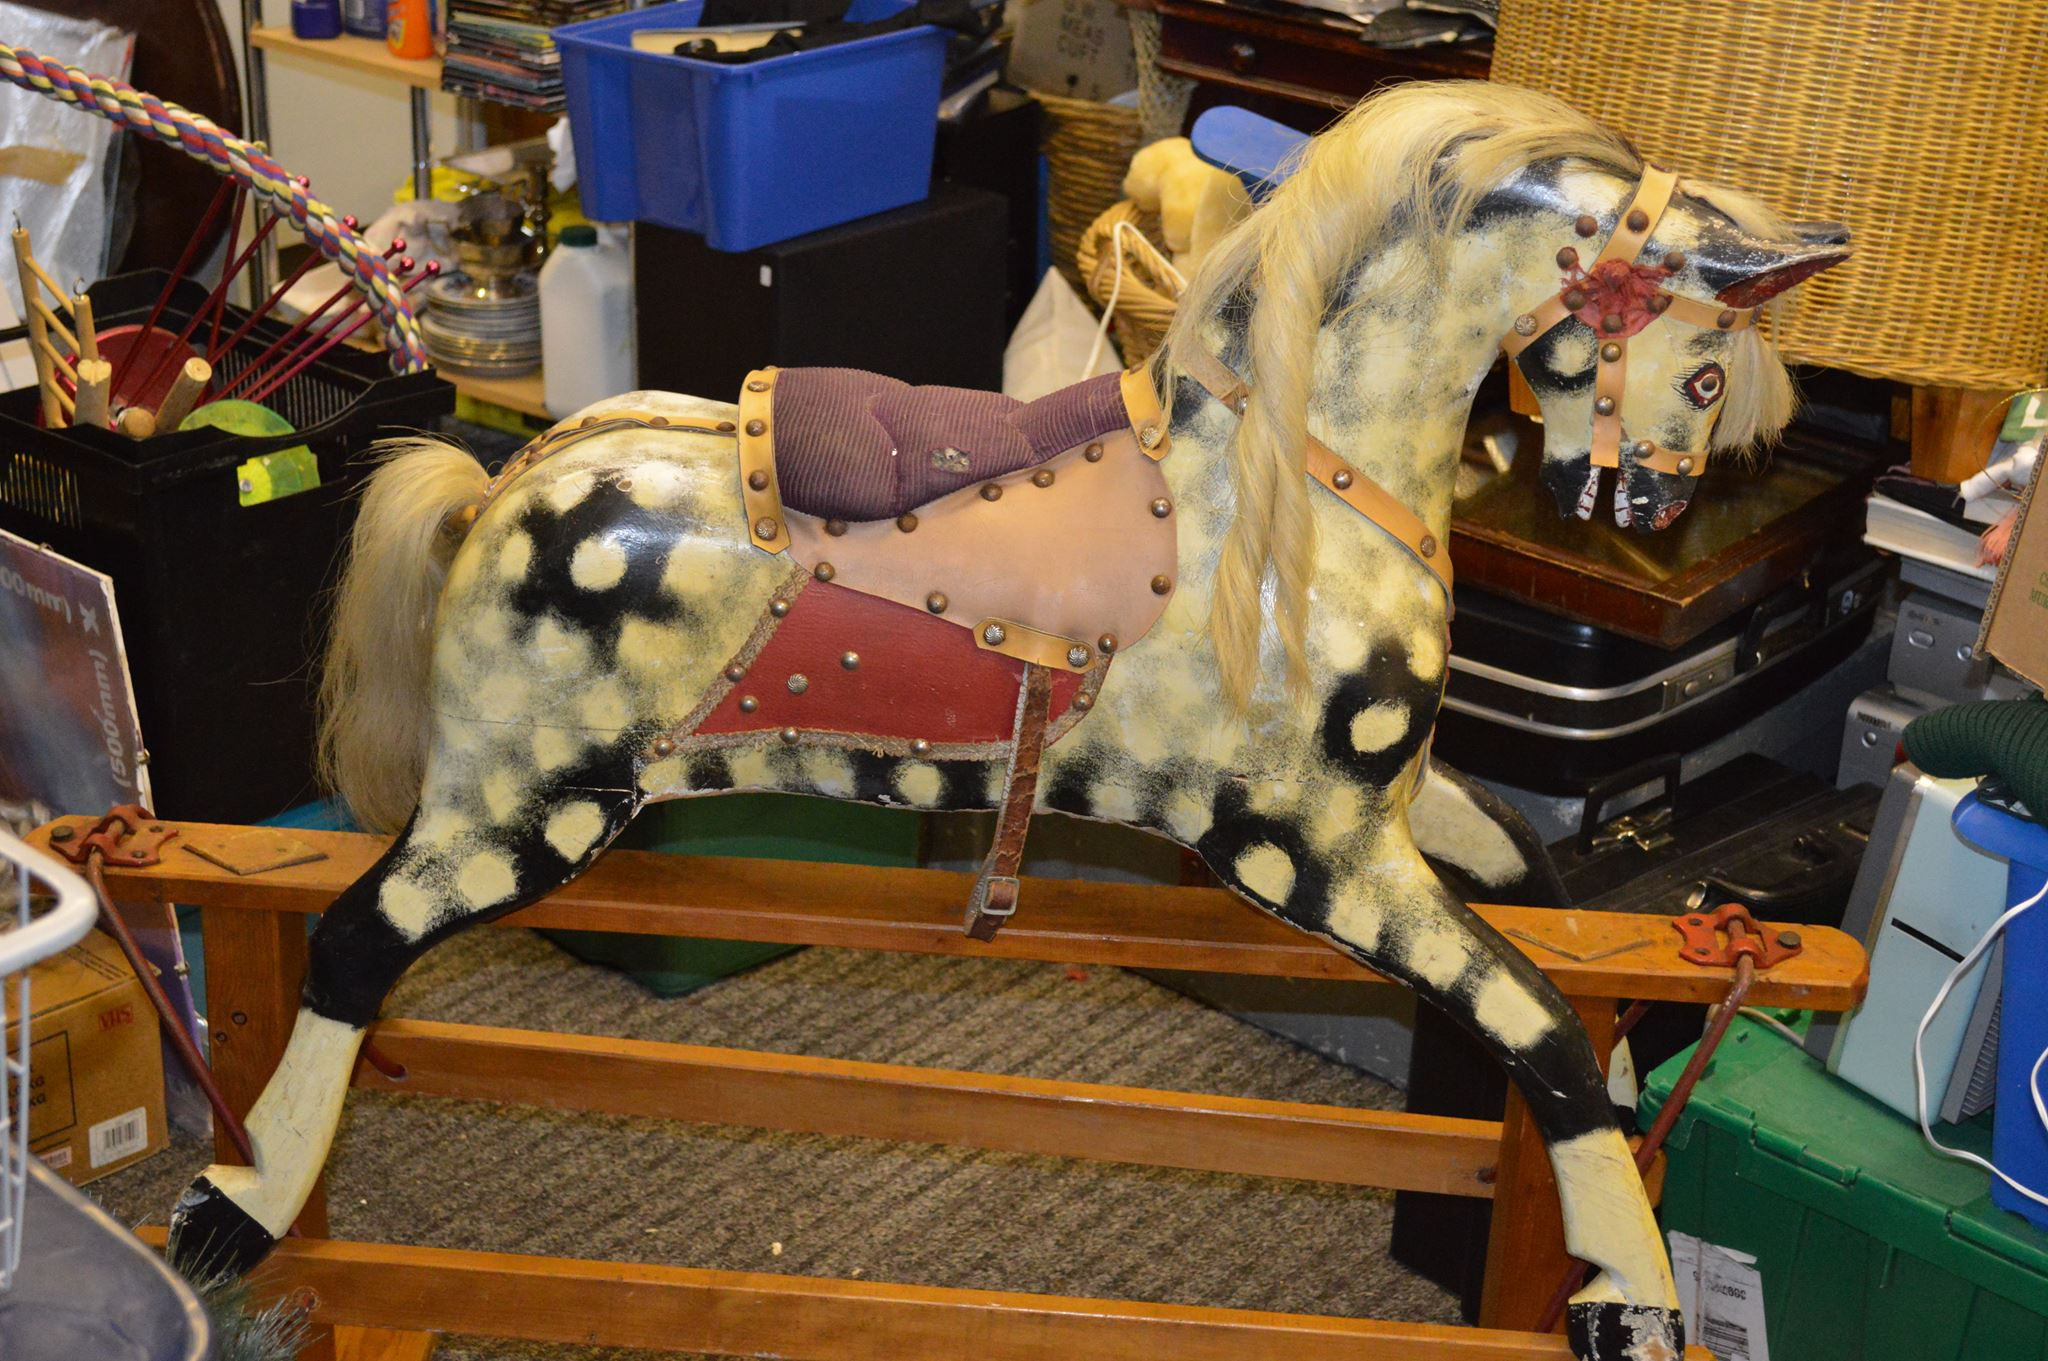 Image of rocking horse